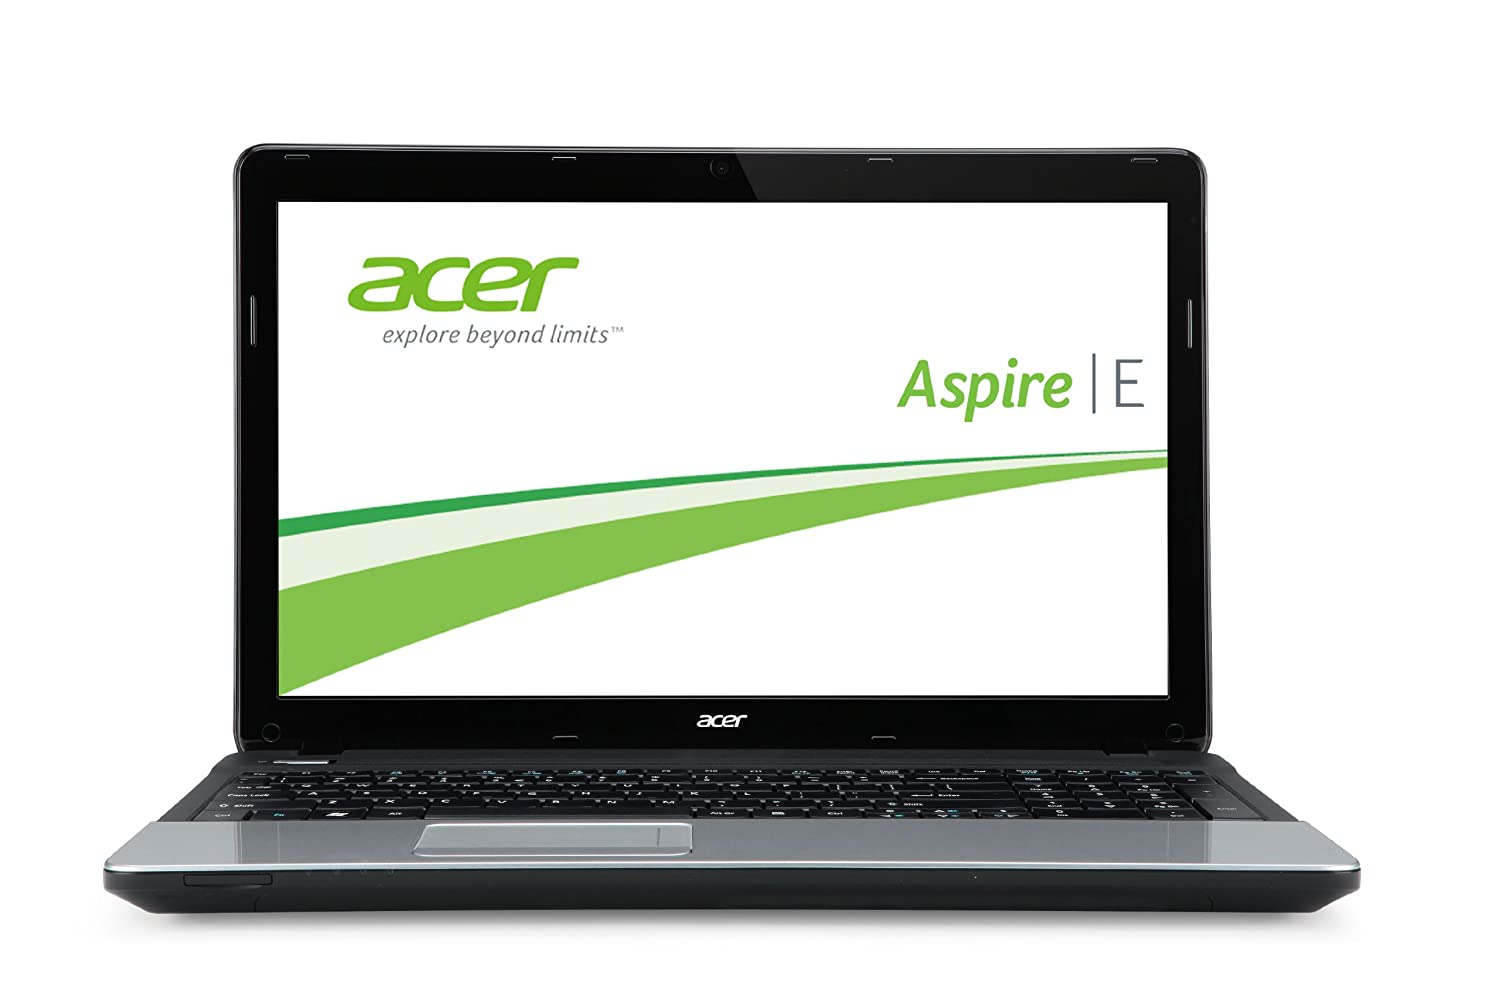 ACER ASPIRE E1-531 INTEL WLAN DRIVERS FOR MAC DOWNLOAD